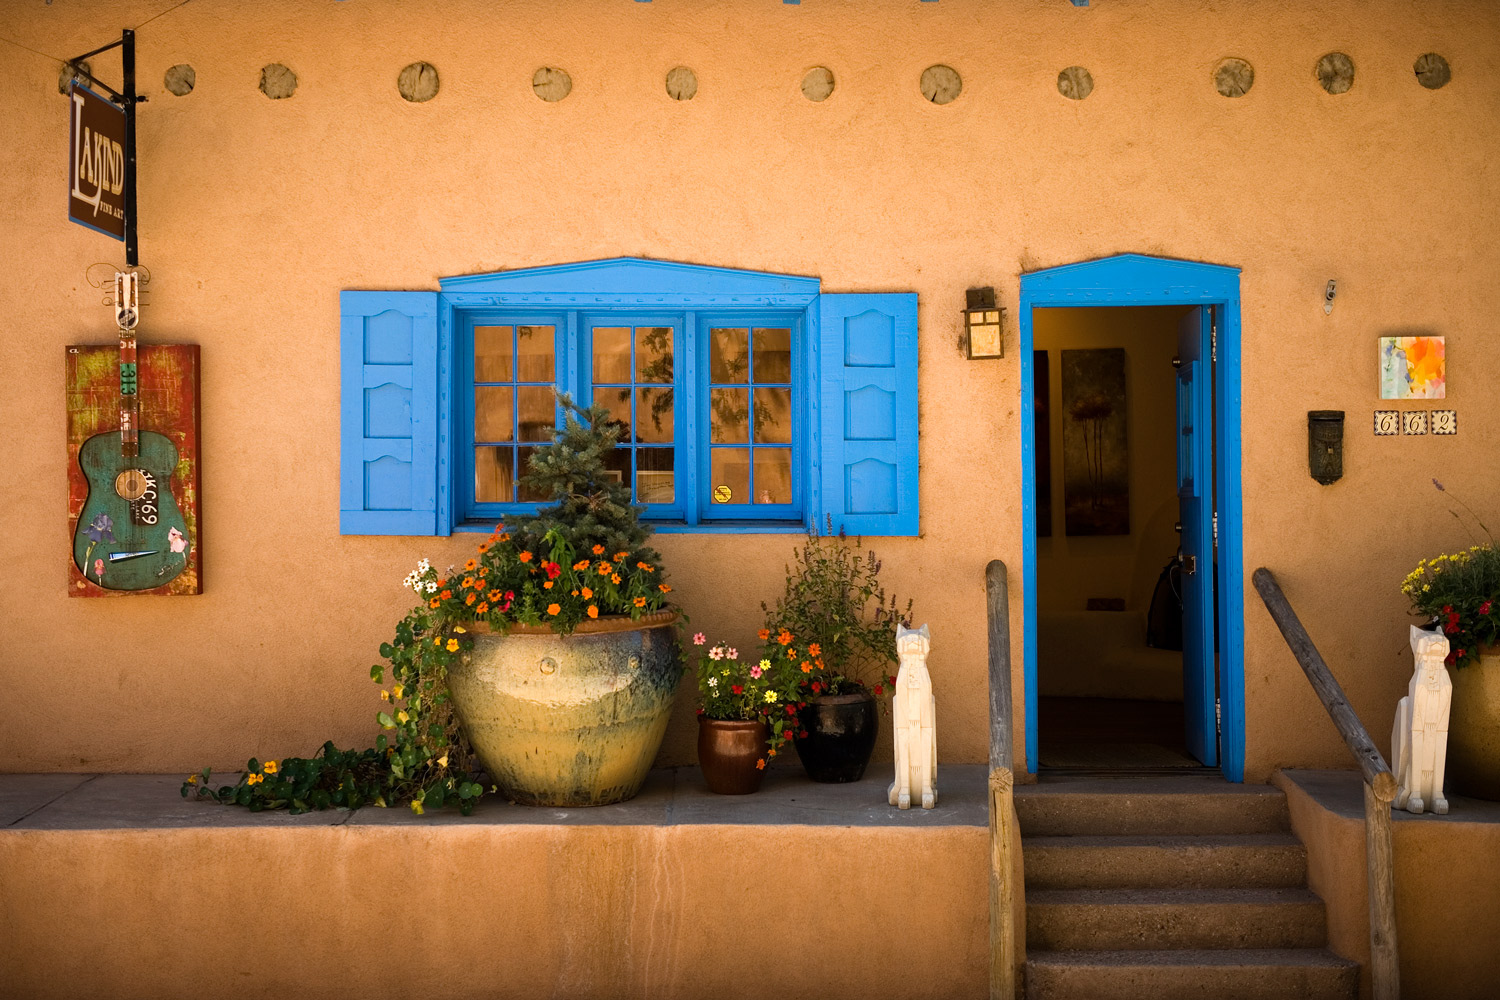 Best-Cities-To-Visit-In-The-Fall-Santa-Fe-2